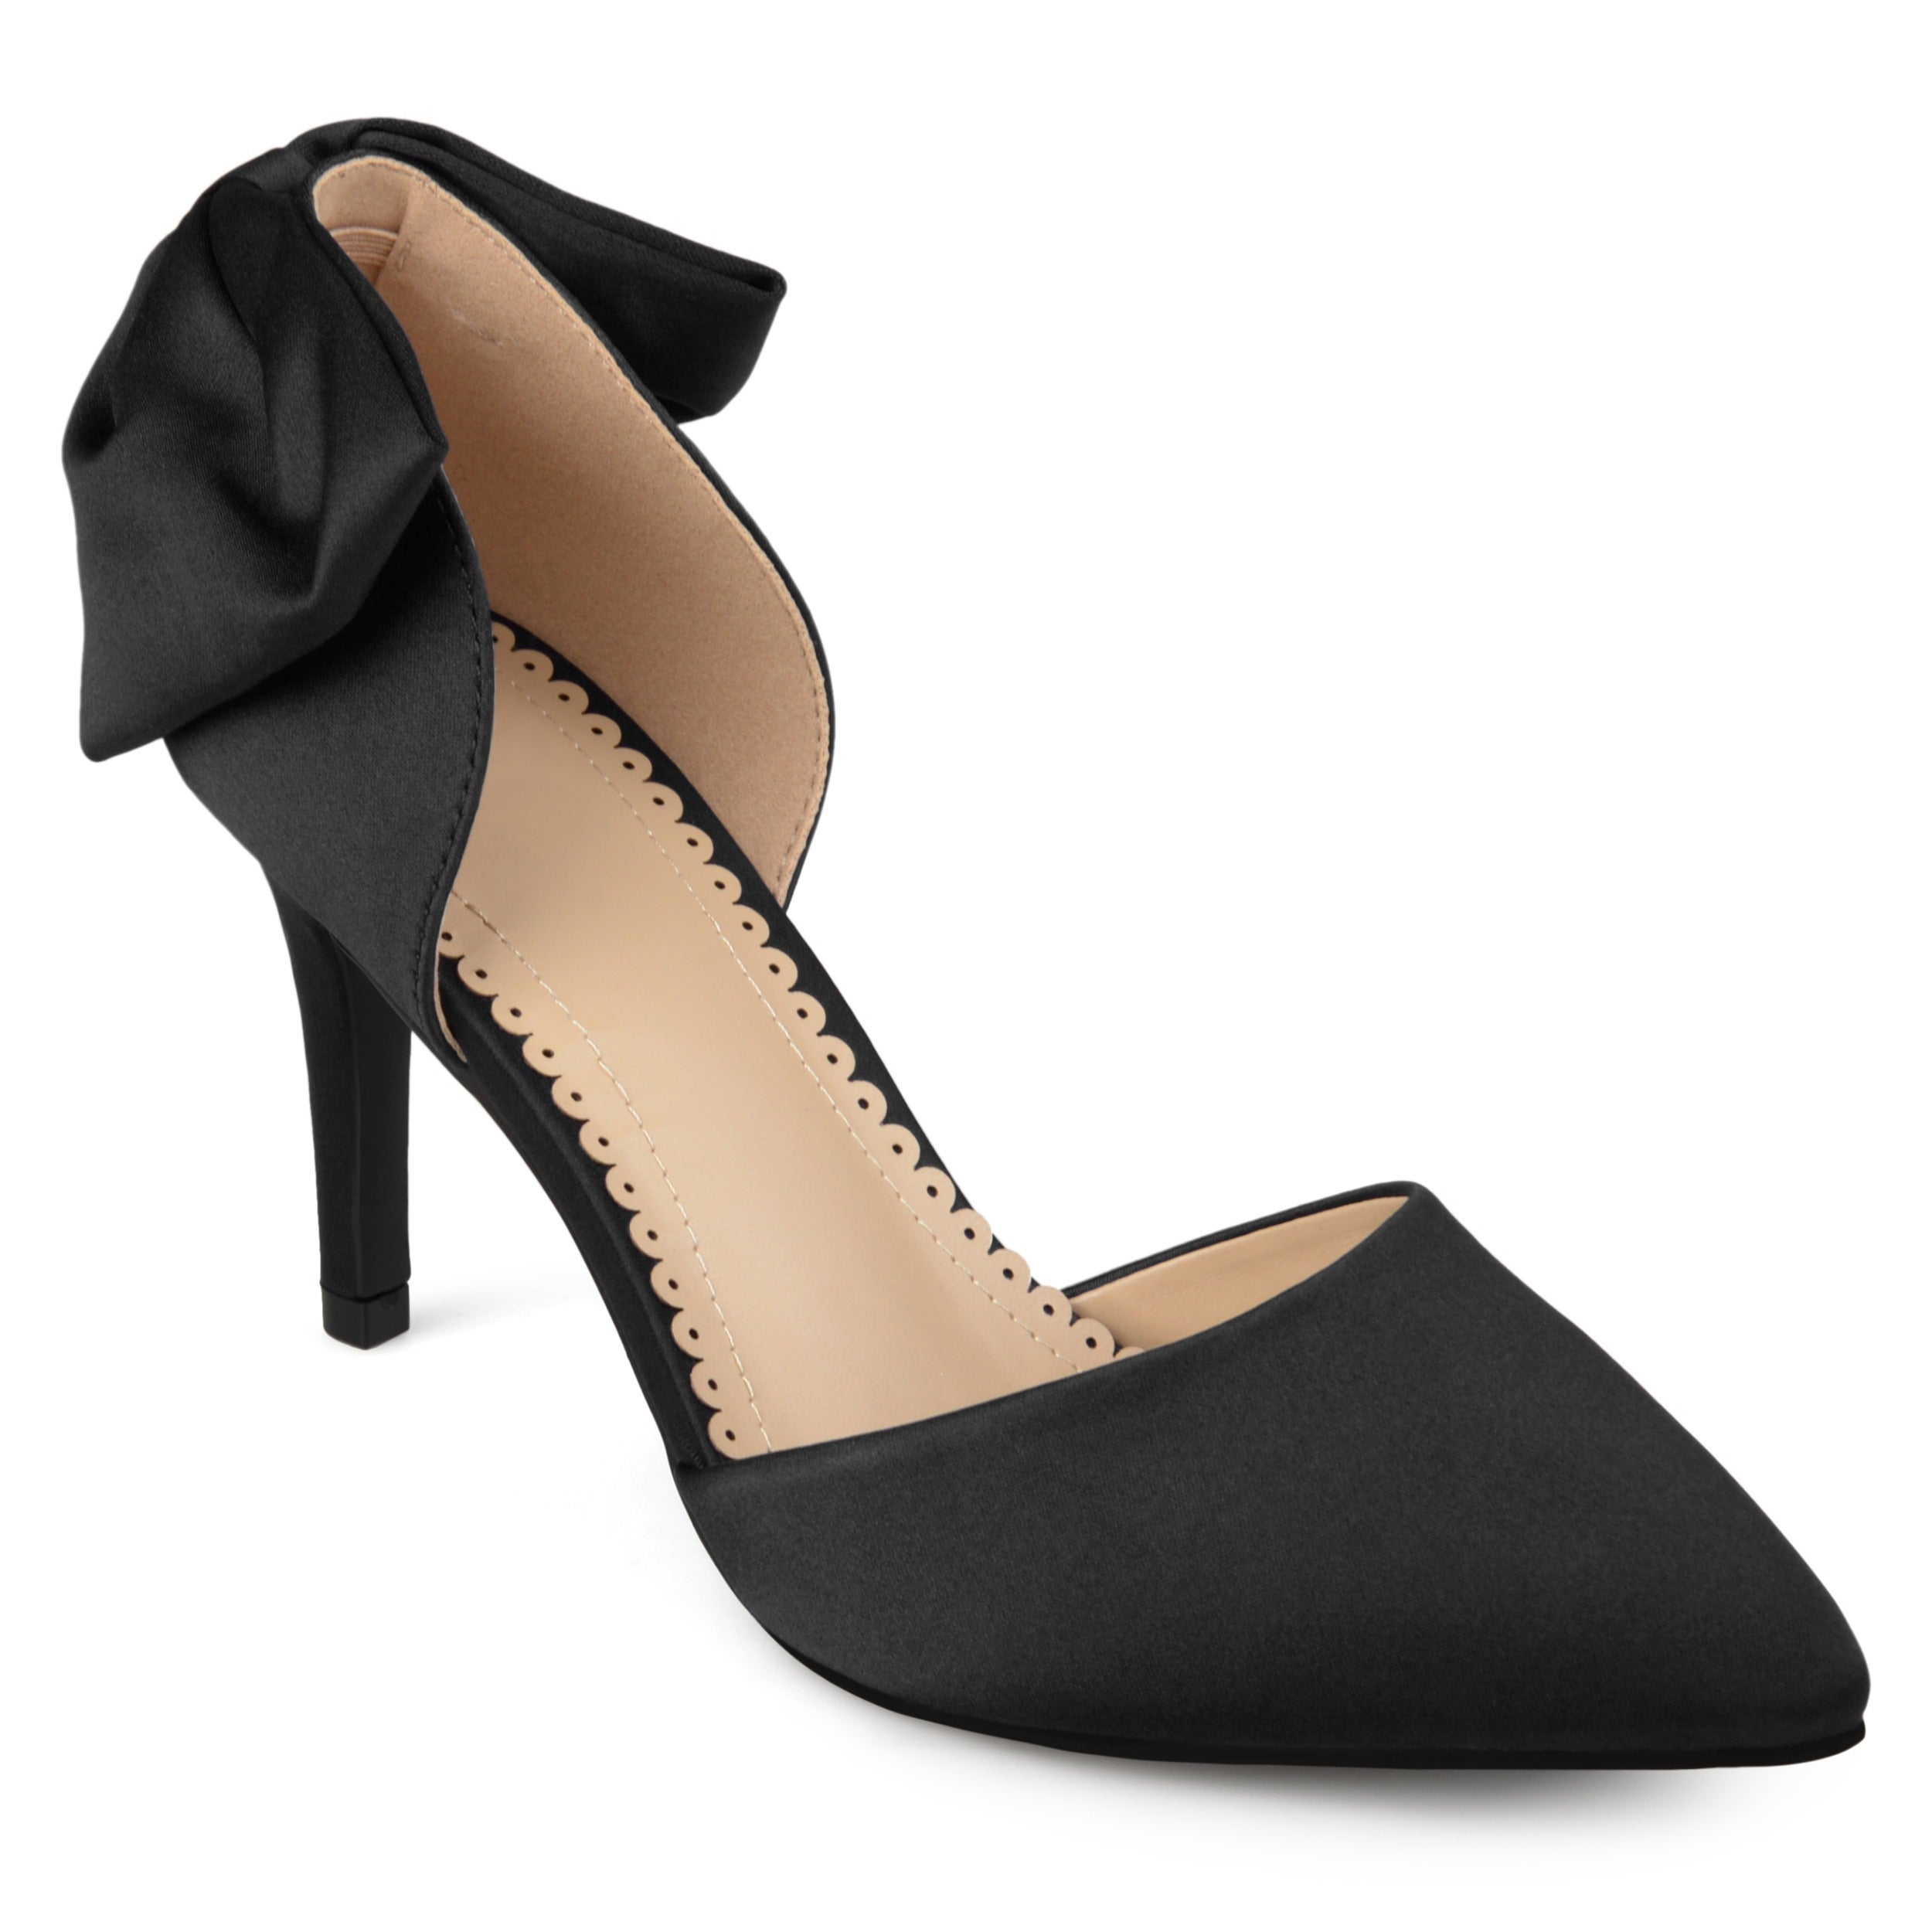 908ab11da71b5a Shop Journee Collection Women's 'Tanzi' Bow Pointed Toe D'orsay ...